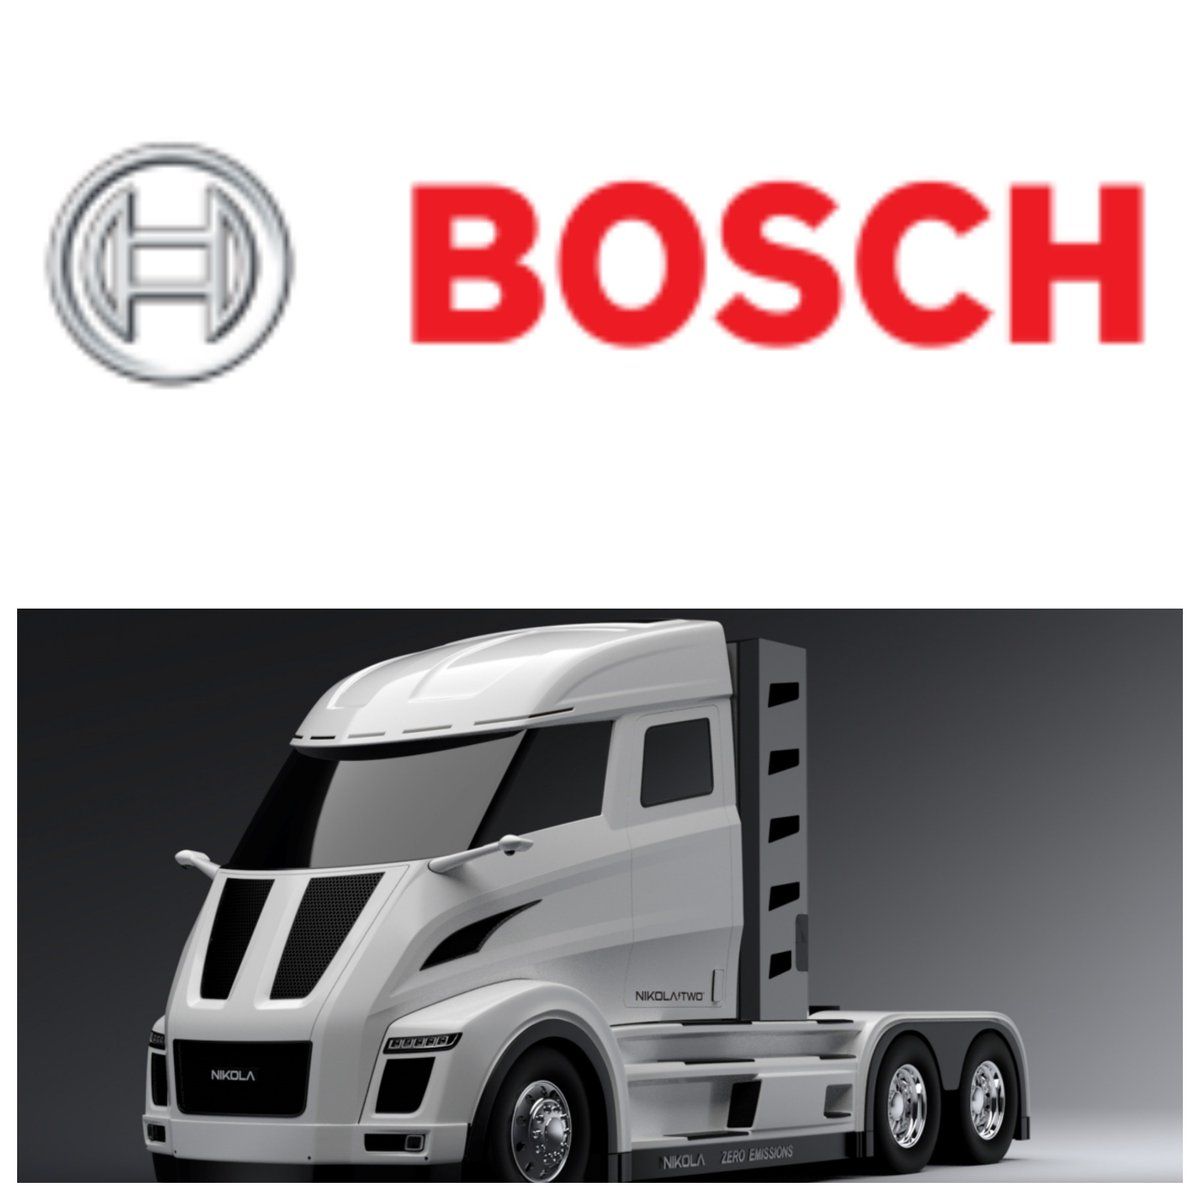 @nikolamotor and @BoschGlobal team on powertrain design for #hydrogen electric long-haul #trucks  http:// tcrn.ch/2fxvooe  &nbsp;  <br>http://pic.twitter.com/ornfHysRPf